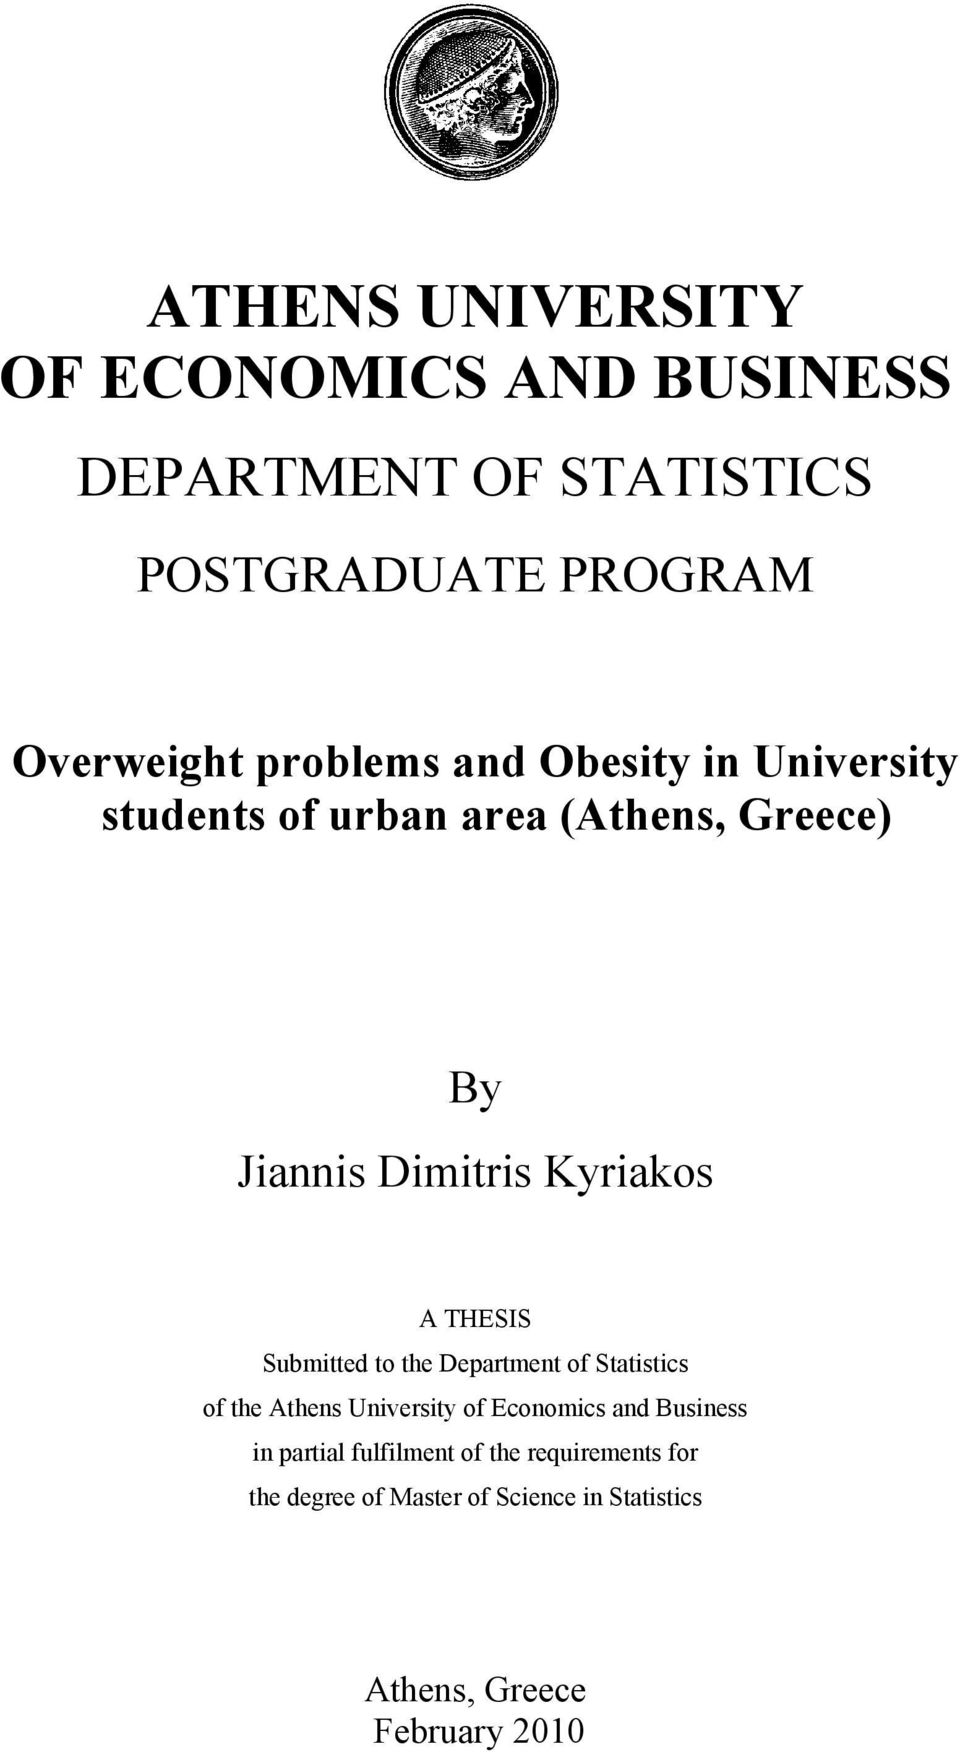 THESIS Submitted to the Department of Statistics of the Athens University of Economics and Business in